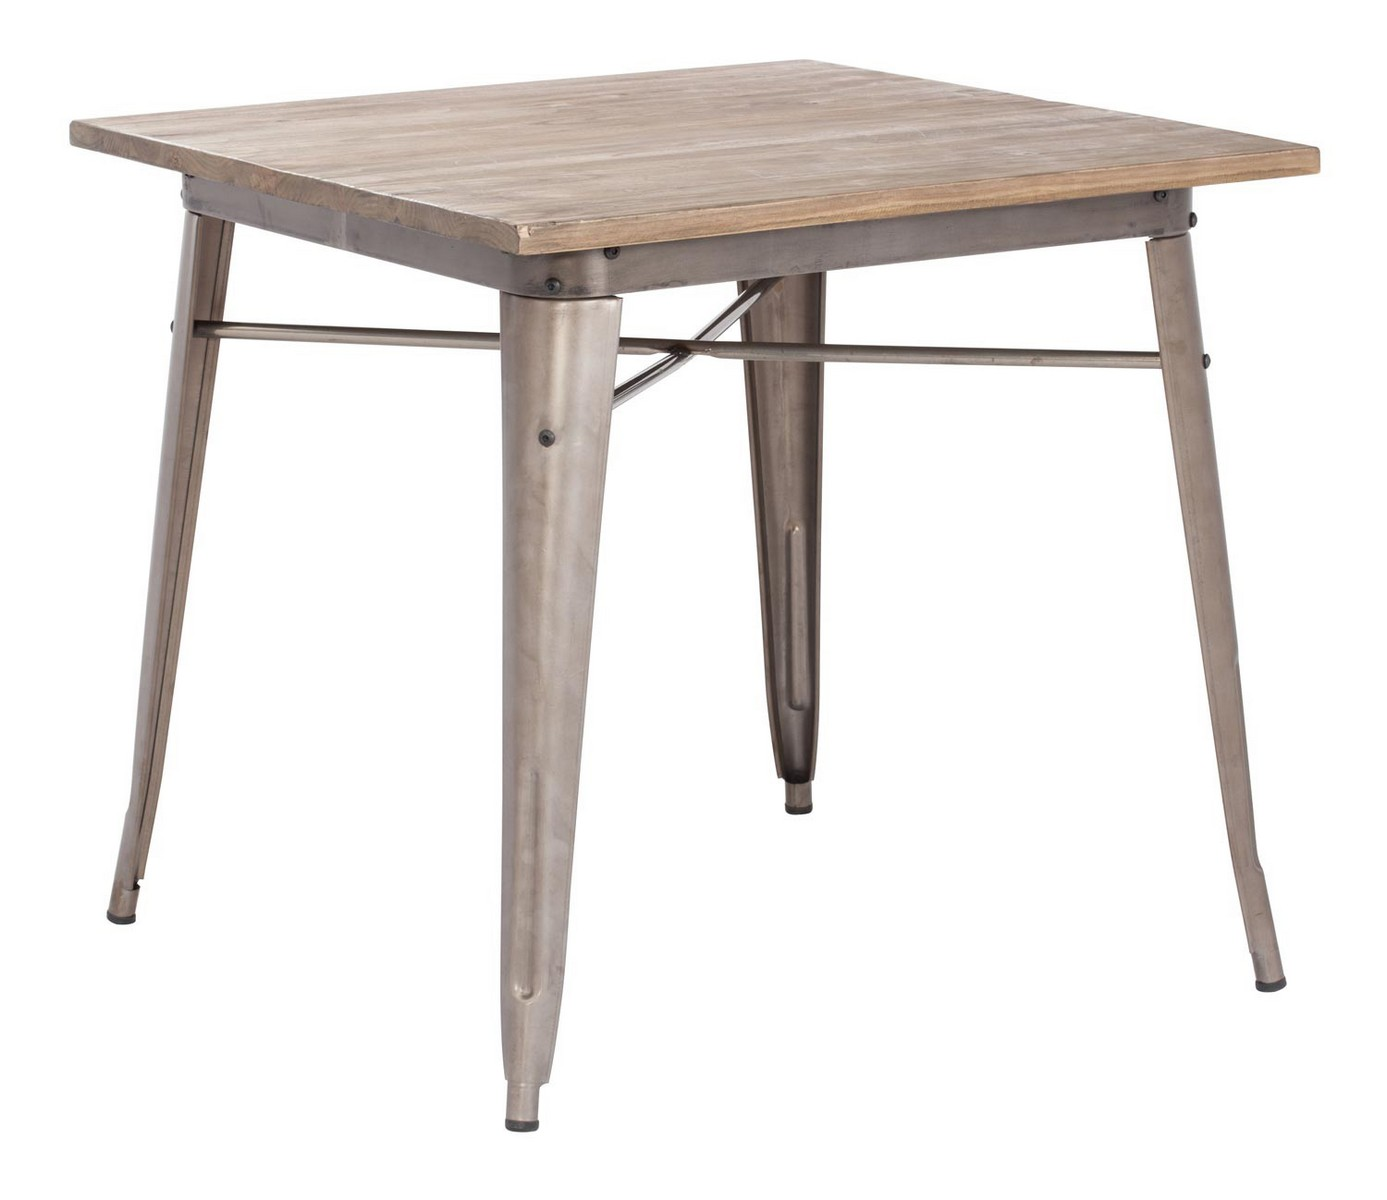 Zuo Modern Titus Dining Table - Rustic Wood